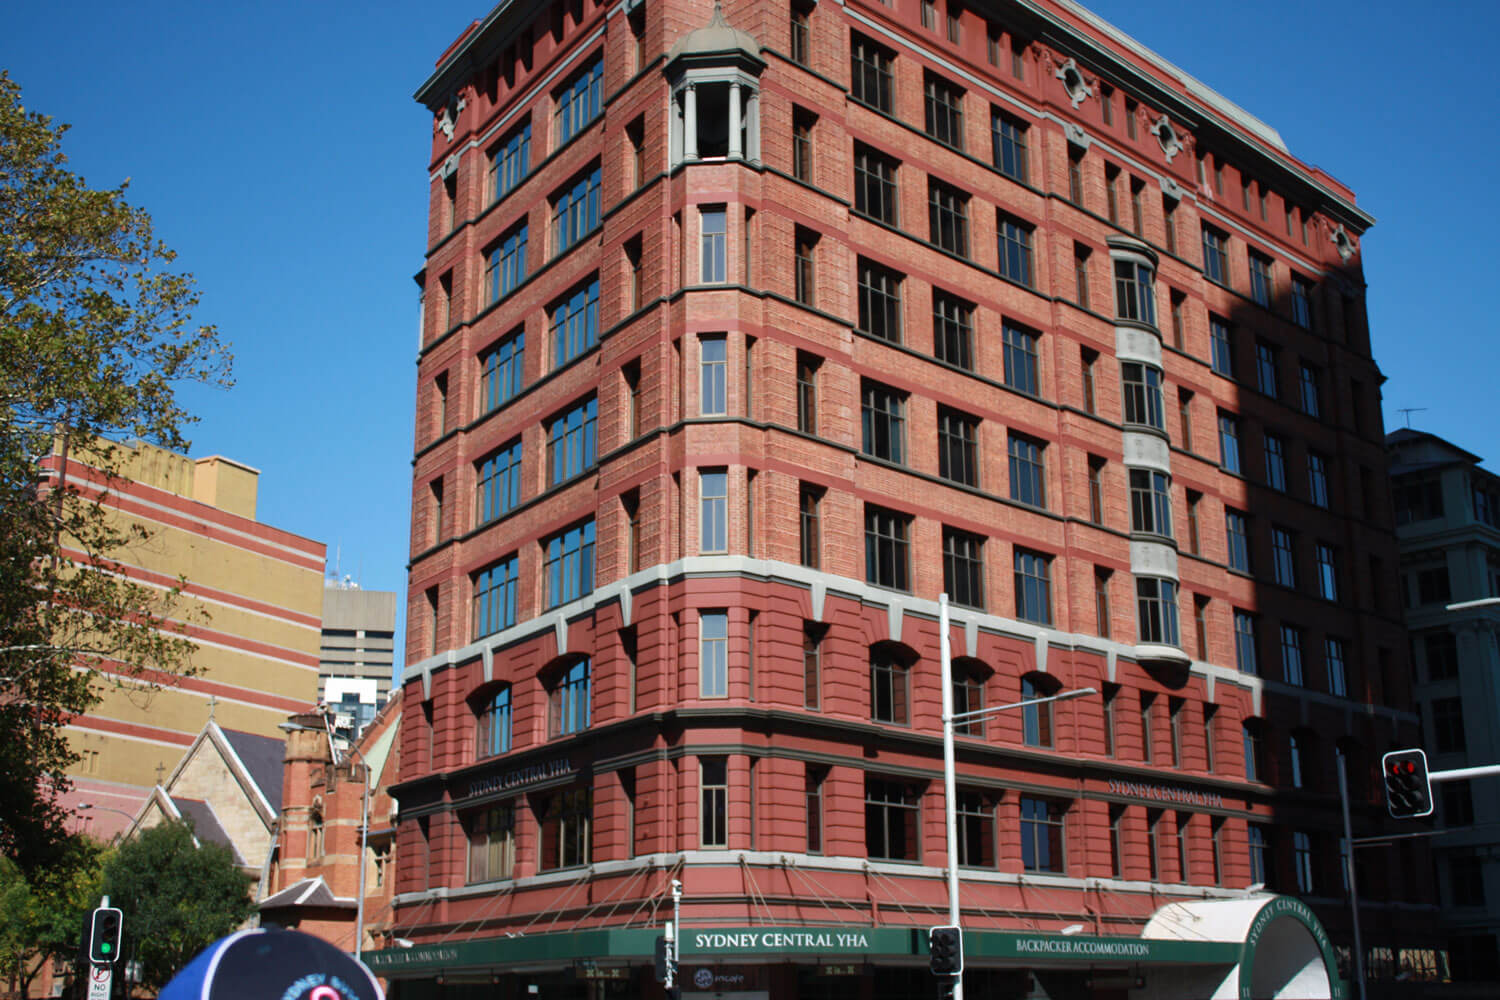 Sydney Youth Hostel Australia at Central Station - Building Maintenance - Remedial Building Services